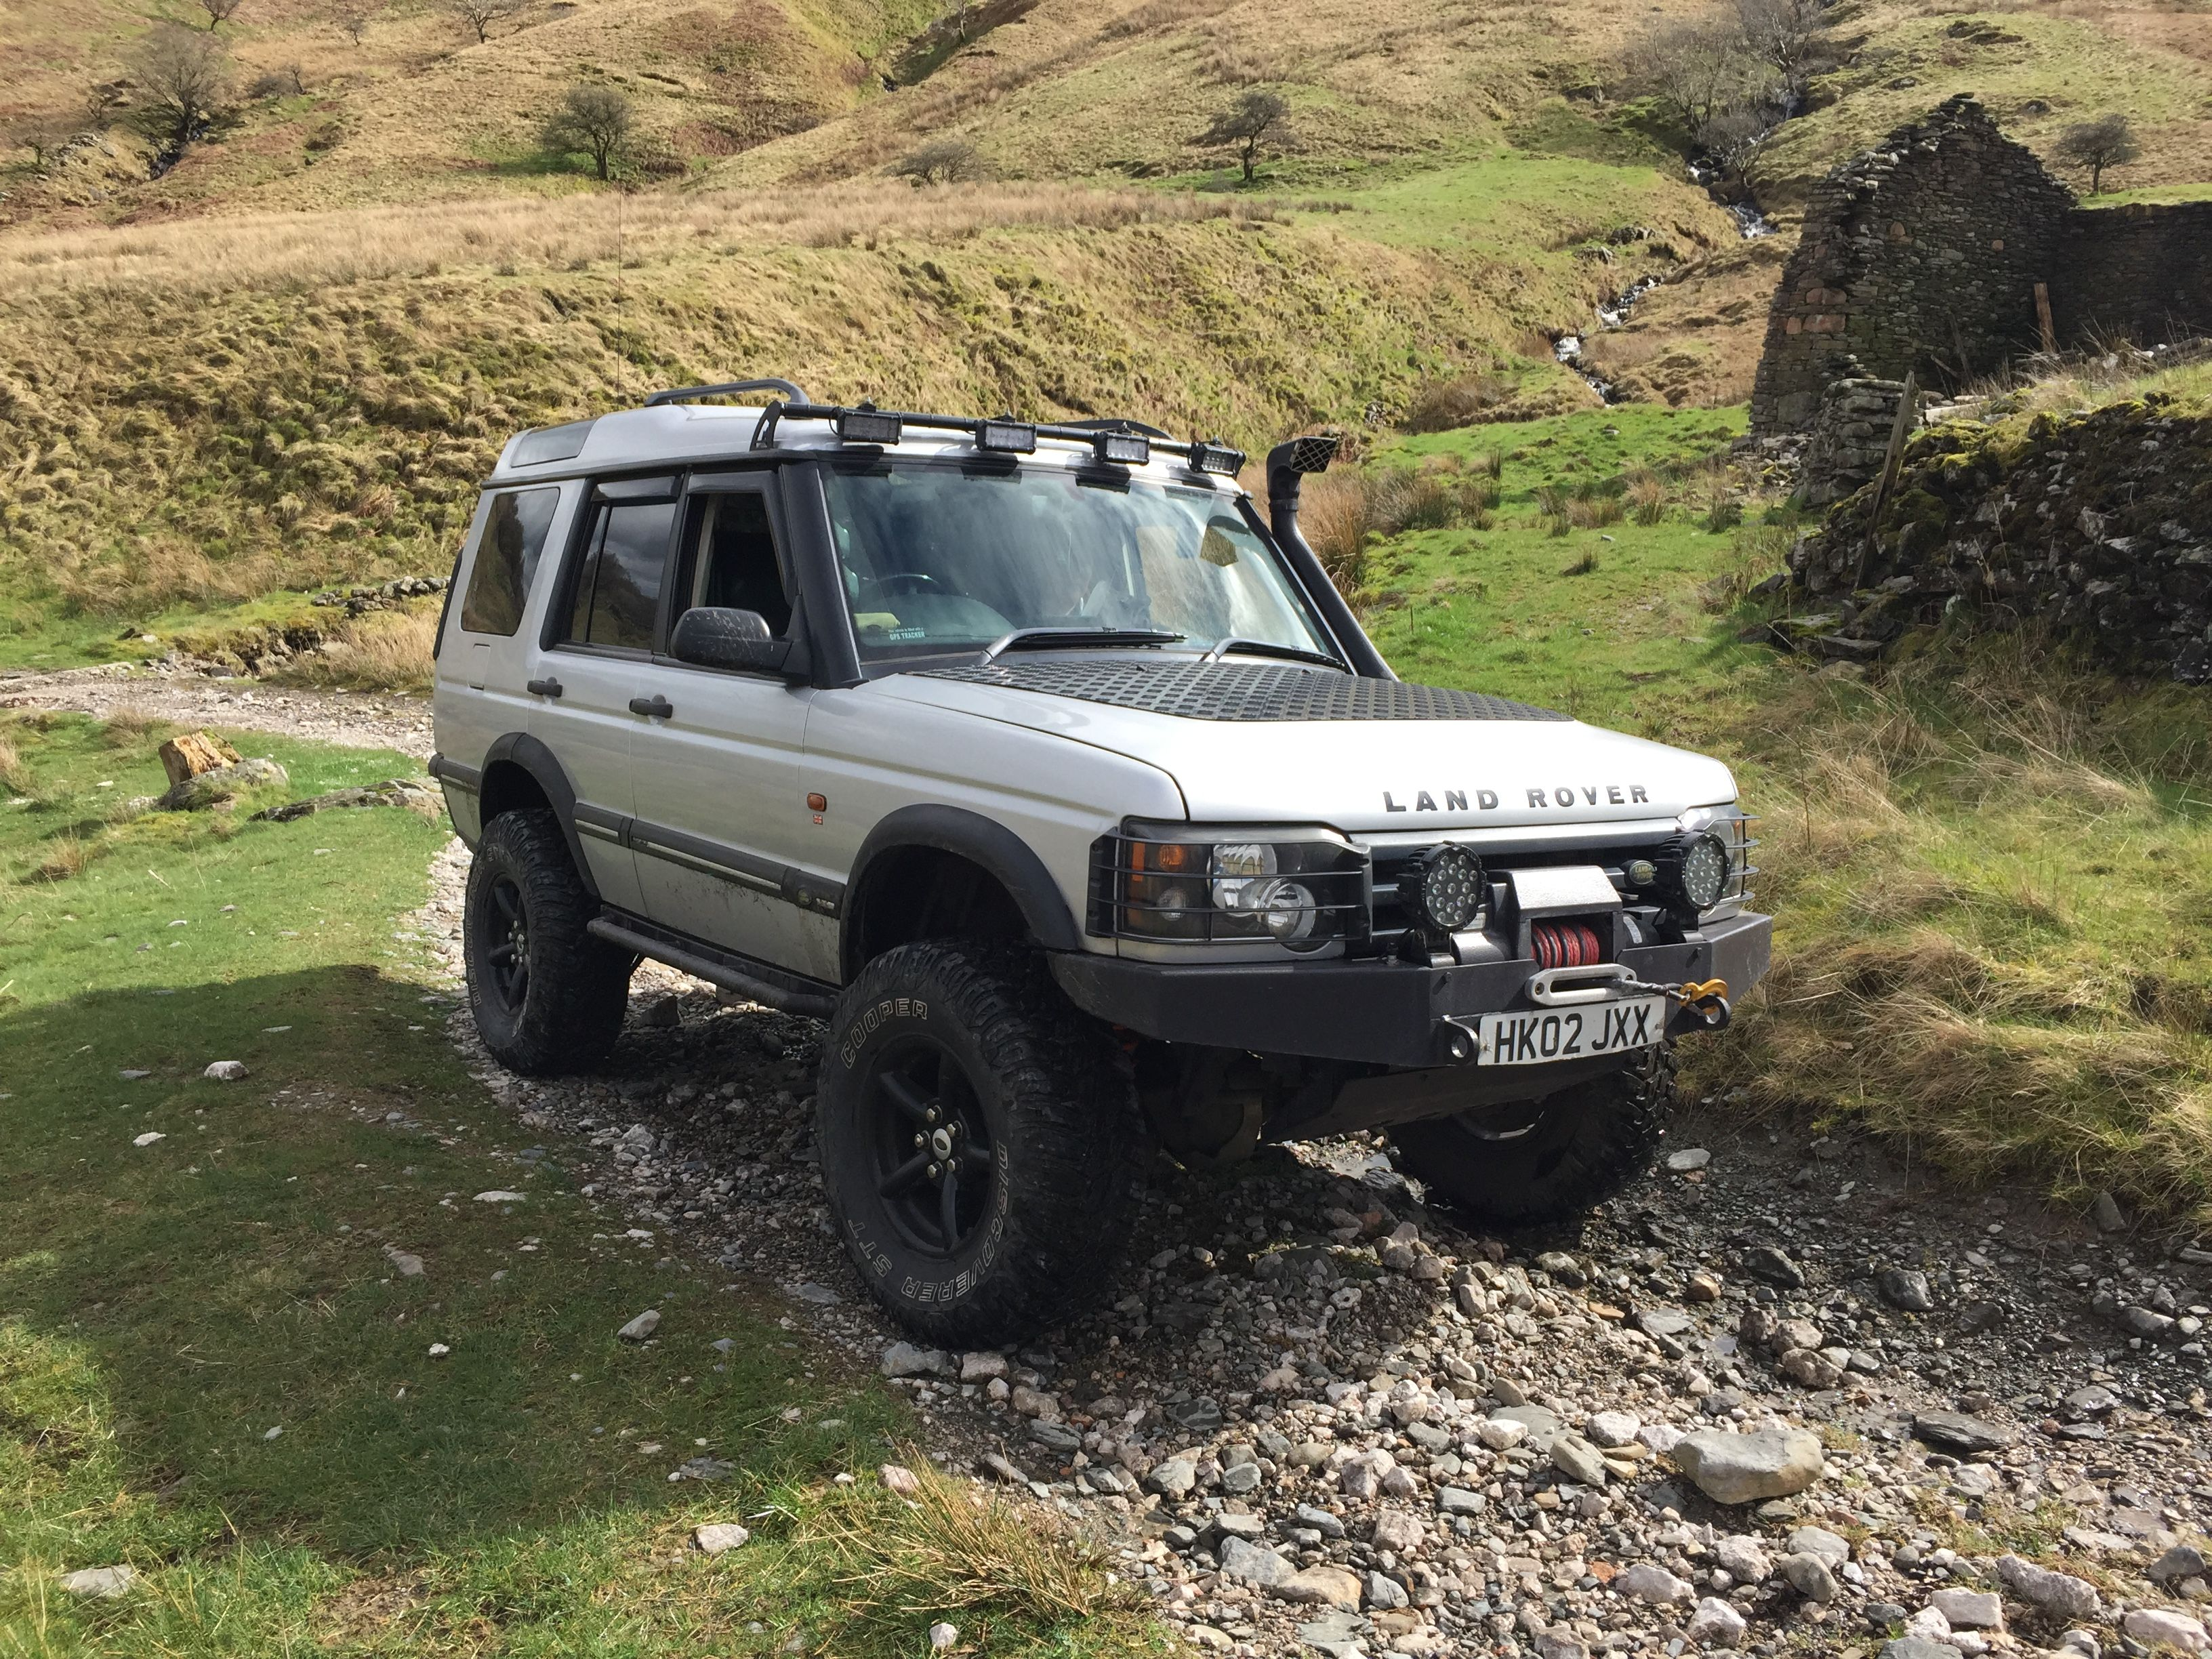 Land Rover Discovery 2 With A 4 Lift With 285 X75 X16 Wheels Land Rover Discovery 2 Land Rover Discovery Land Rover